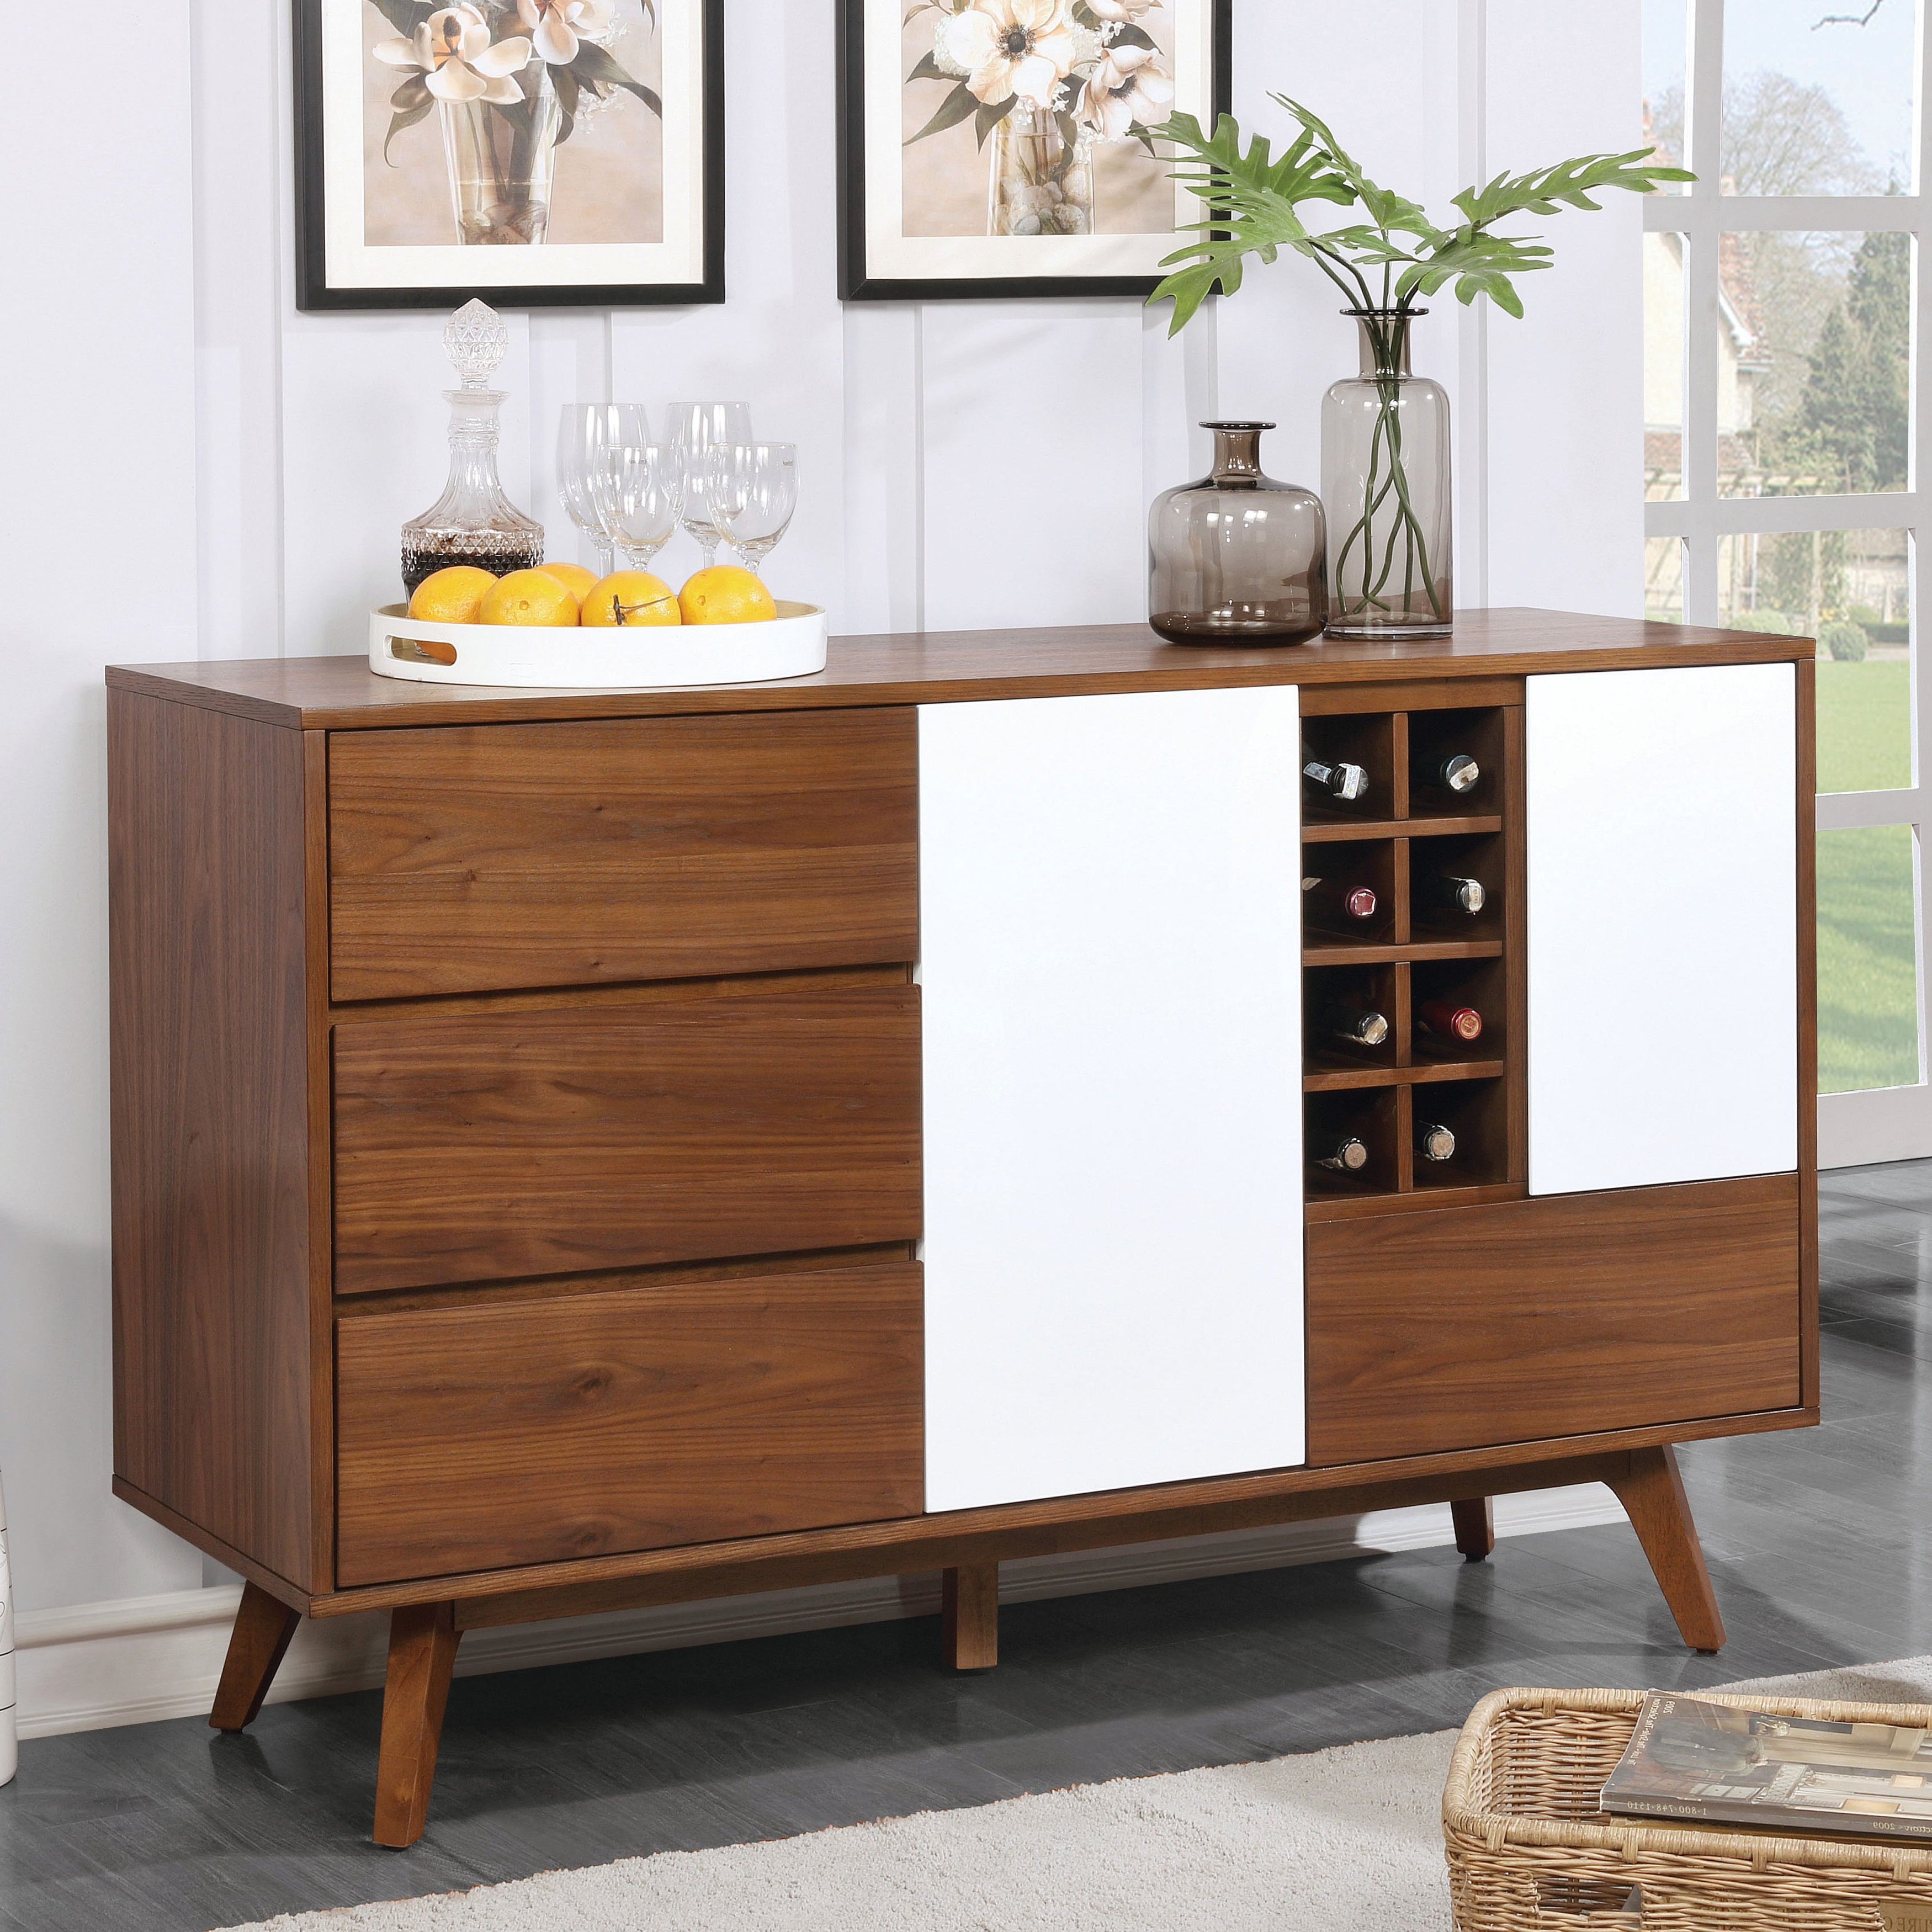 Furniture Of America Liman Mid Century Modern 2 Tone Oak/white Multi Storage Buffet/wine Cabinet For Modern Natural Oak Dining Buffets (View 13 of 20)